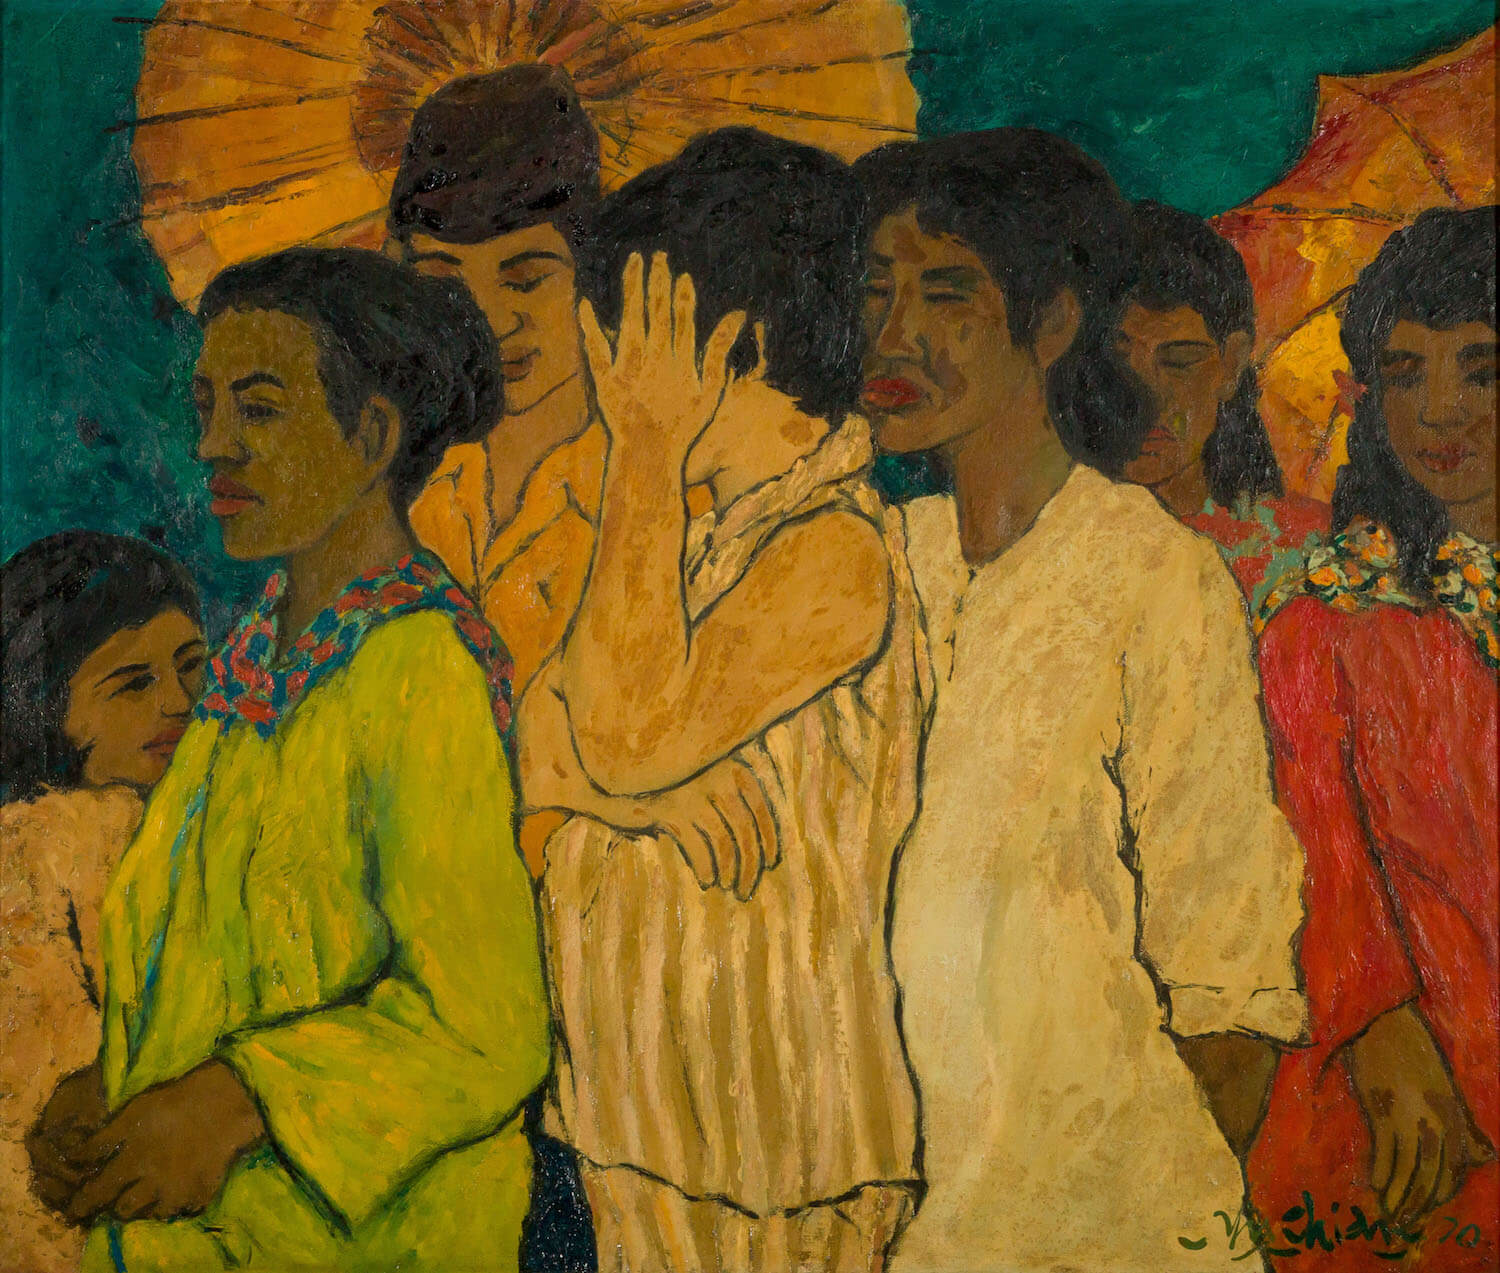 Chia Yu Chian, 'Queue Up', 1970, oil on board, 56 x 65cm. Image courtesy of ILHAM Gallery.